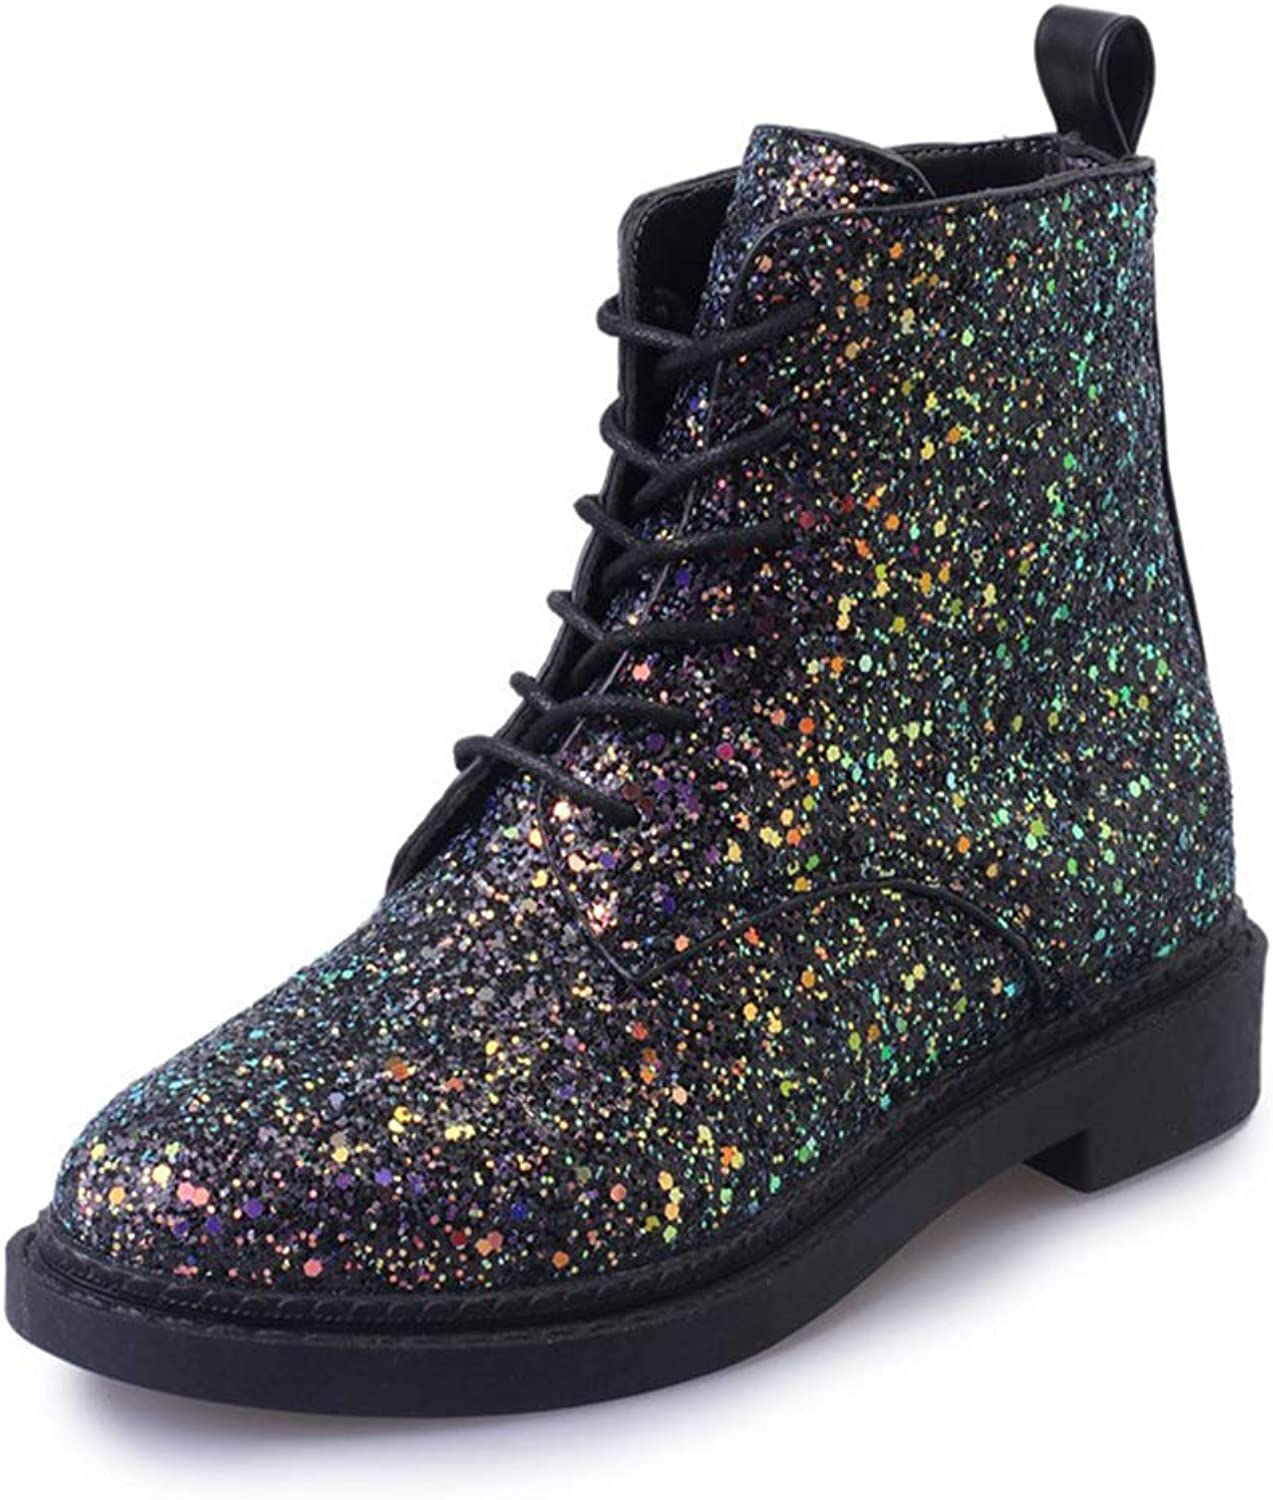 Women's Ankle Boots Bling Sequined Cloth Low Heel Short shoes Lace Up Party Fashion Casual Boot